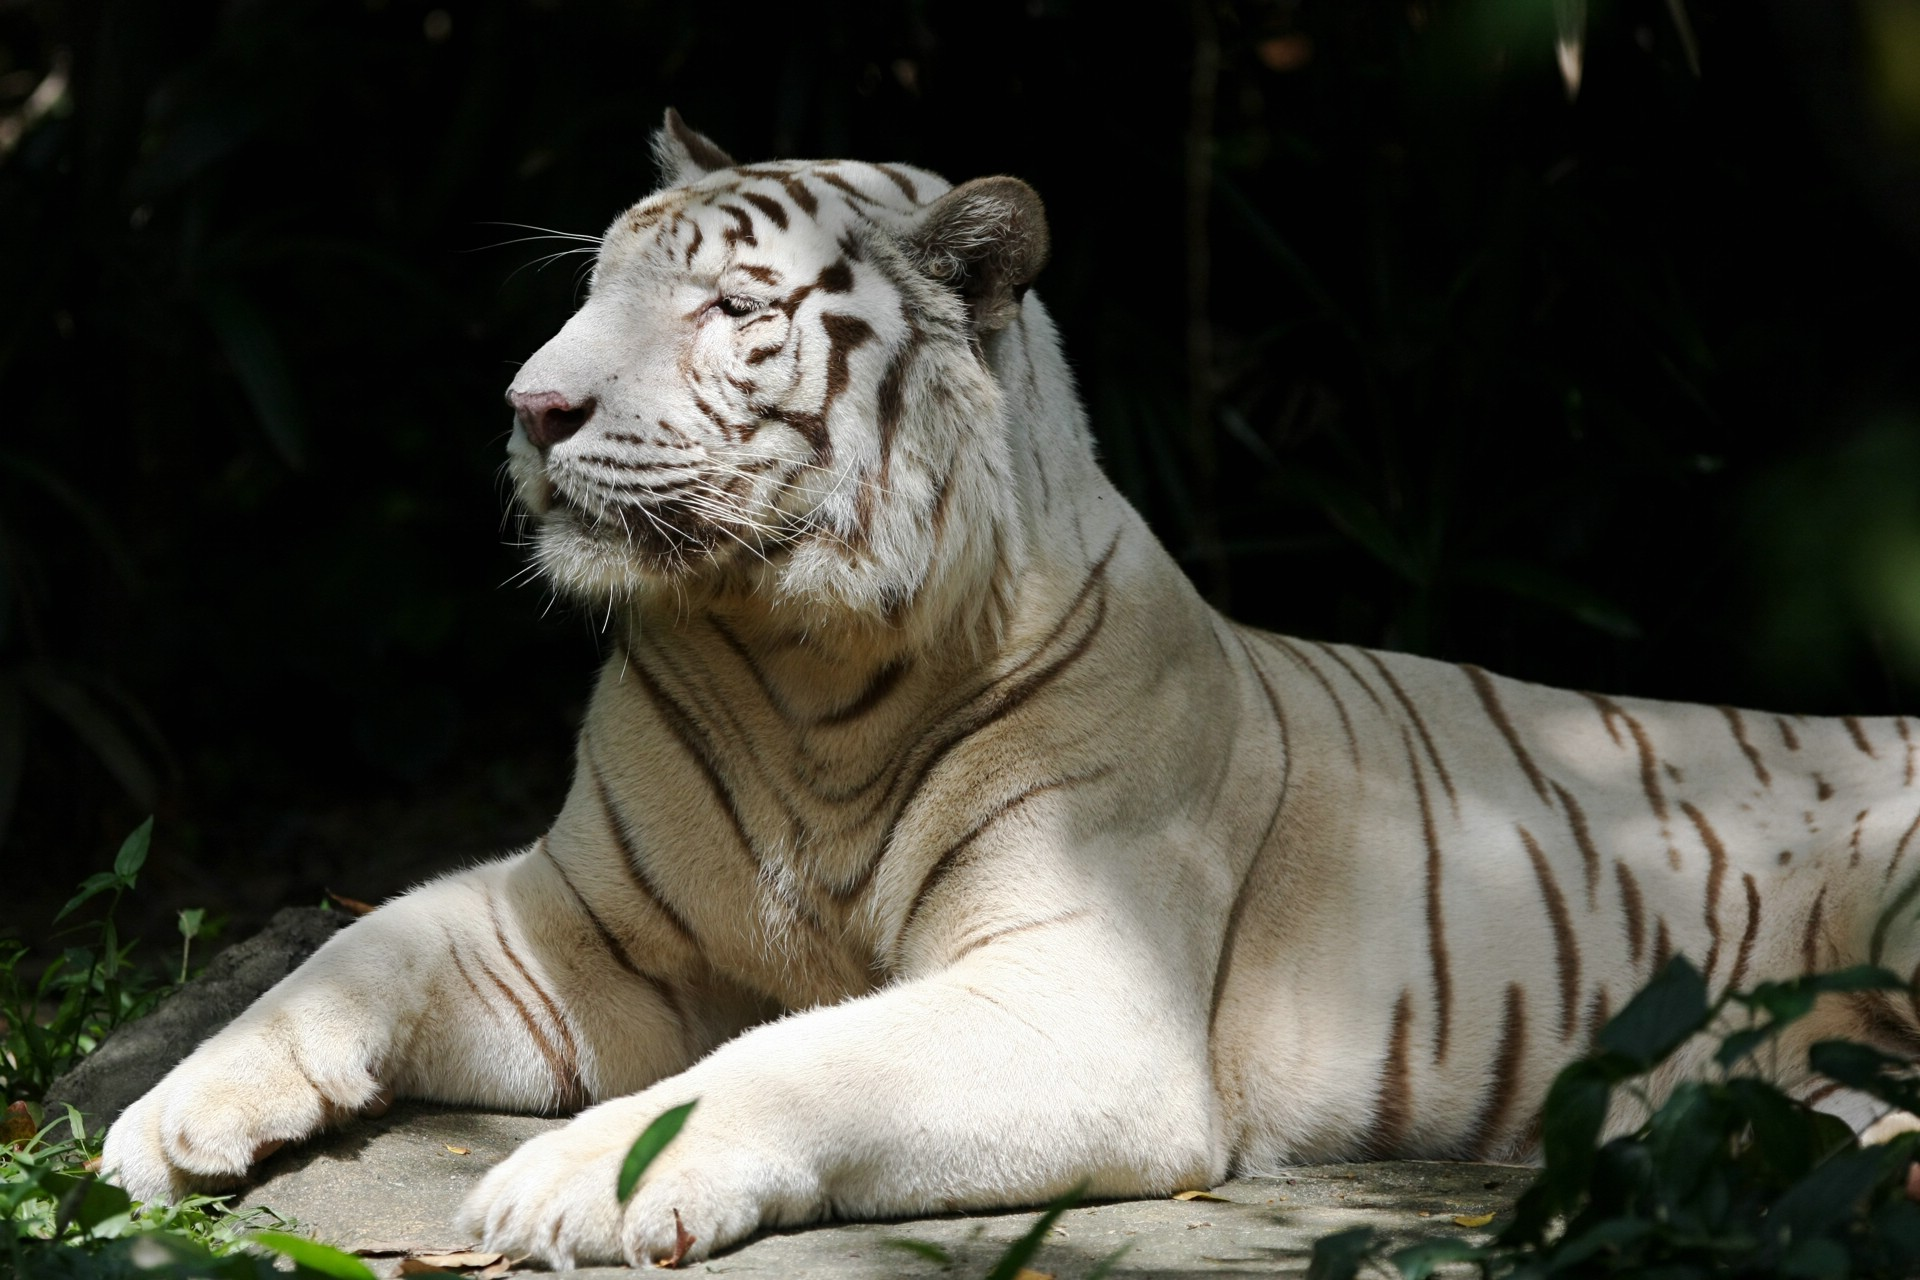 Fond d 39 cran hd tigre blanc gratuit fonds cran tigre for Photo d ecran gratuit